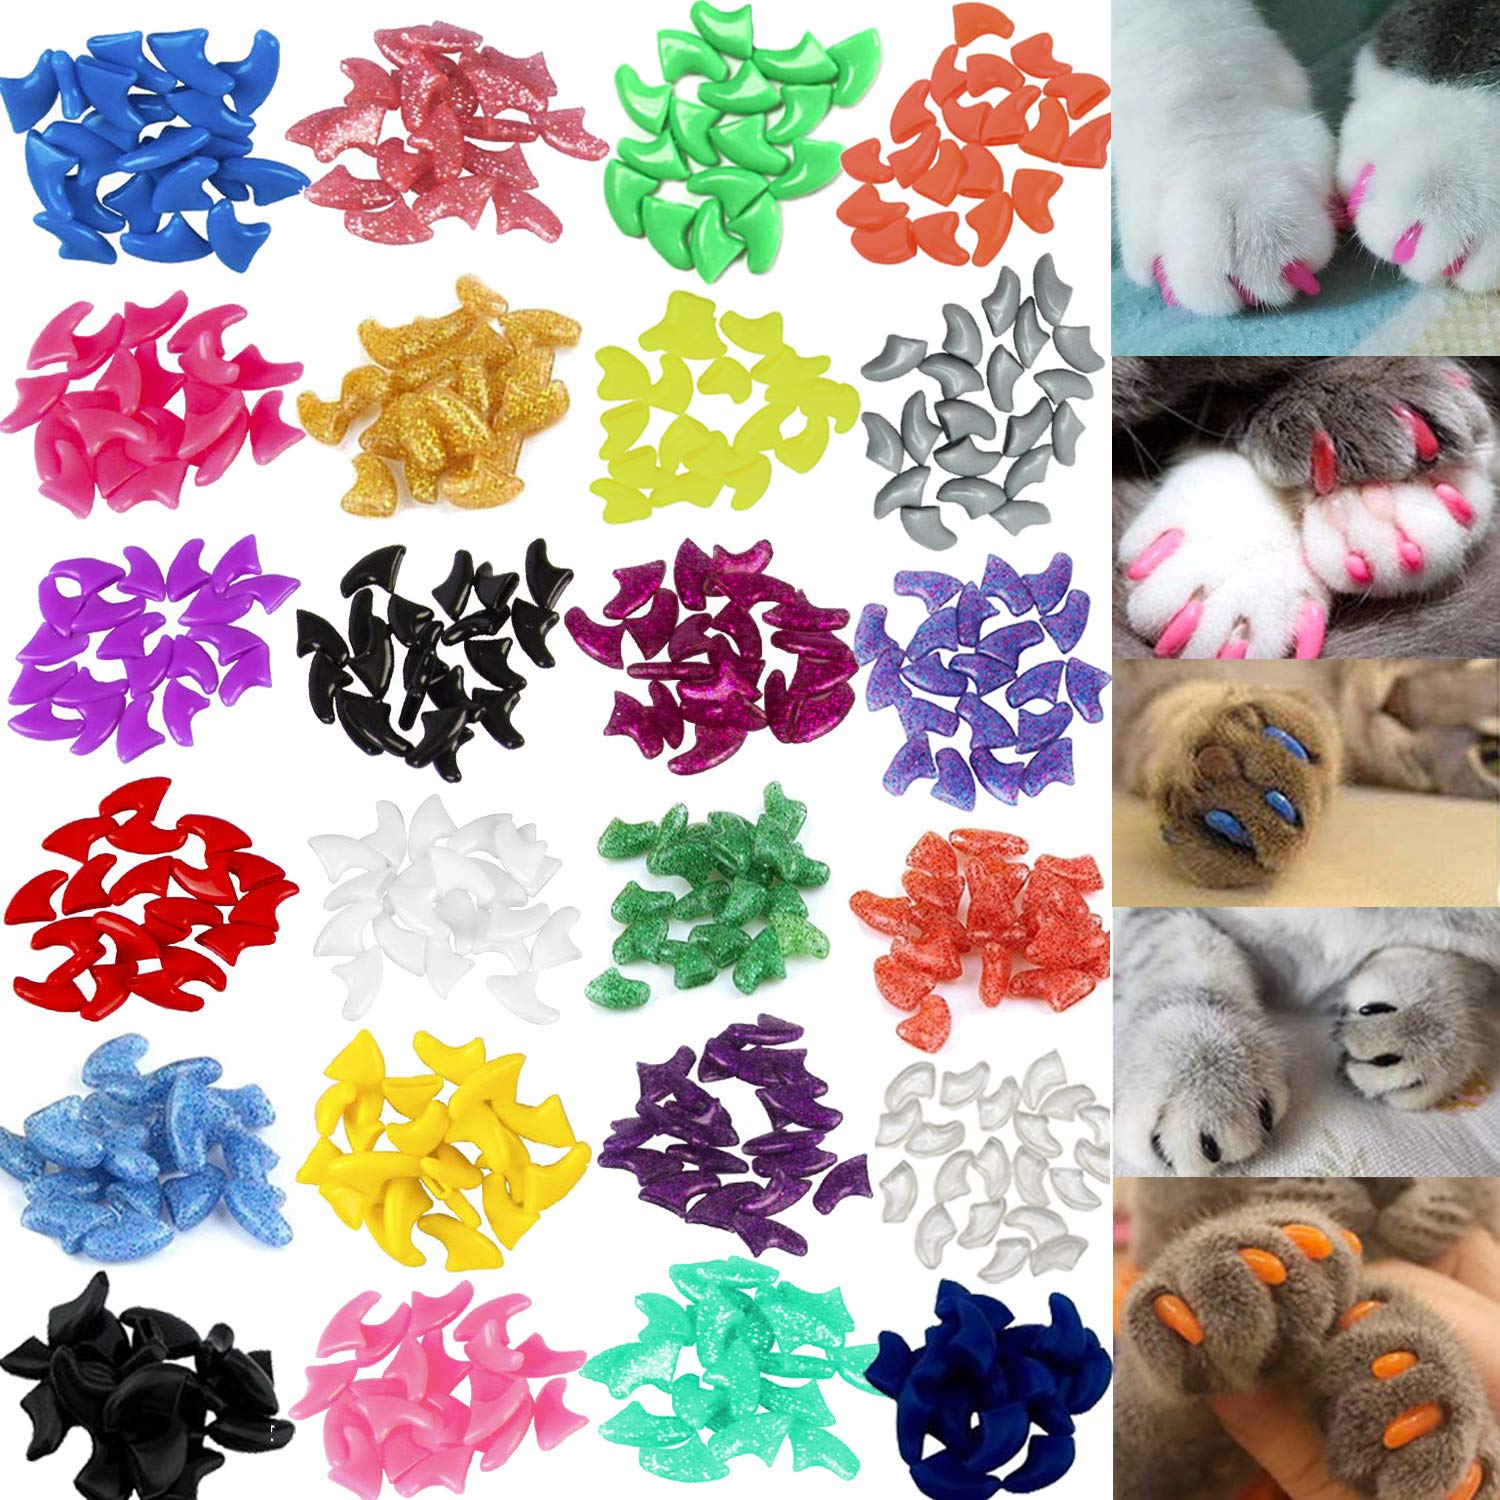 VICTHY 140pcs Cat Nail Caps, Colorful Pet Cat Soft Claws Nail Covers for Cat Claws with Glue and Applicators Medium Size by VICTHY